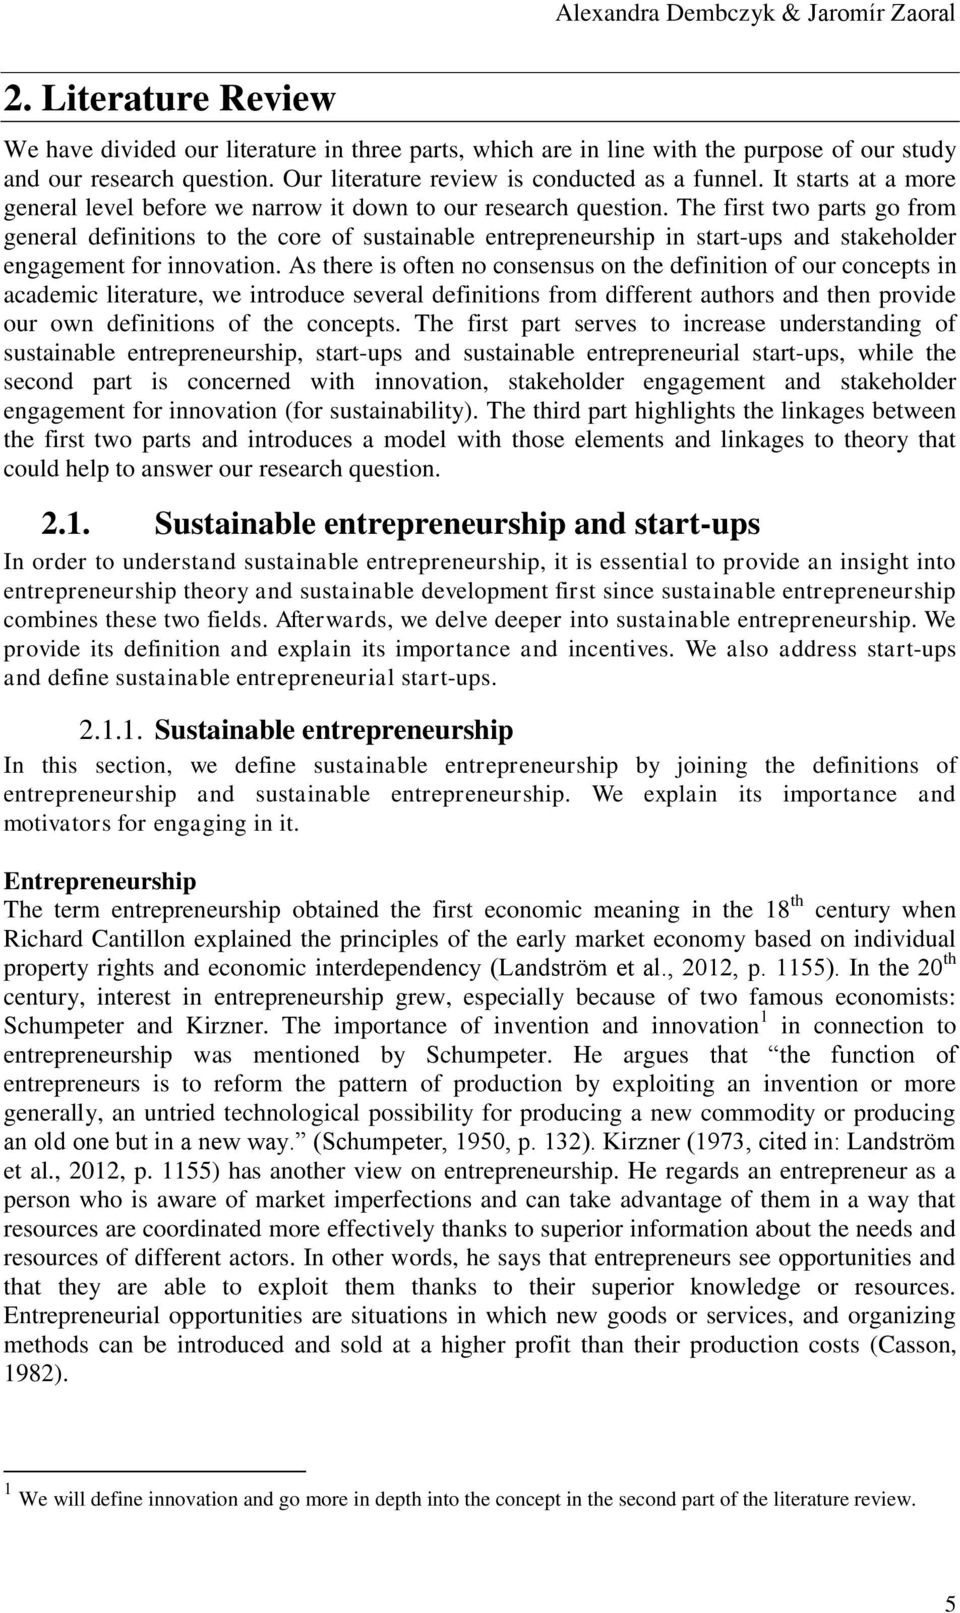 The first two parts go from general definitions to the core of sustainable entrepreneurship in start-ups and stakeholder engagement for innovation.